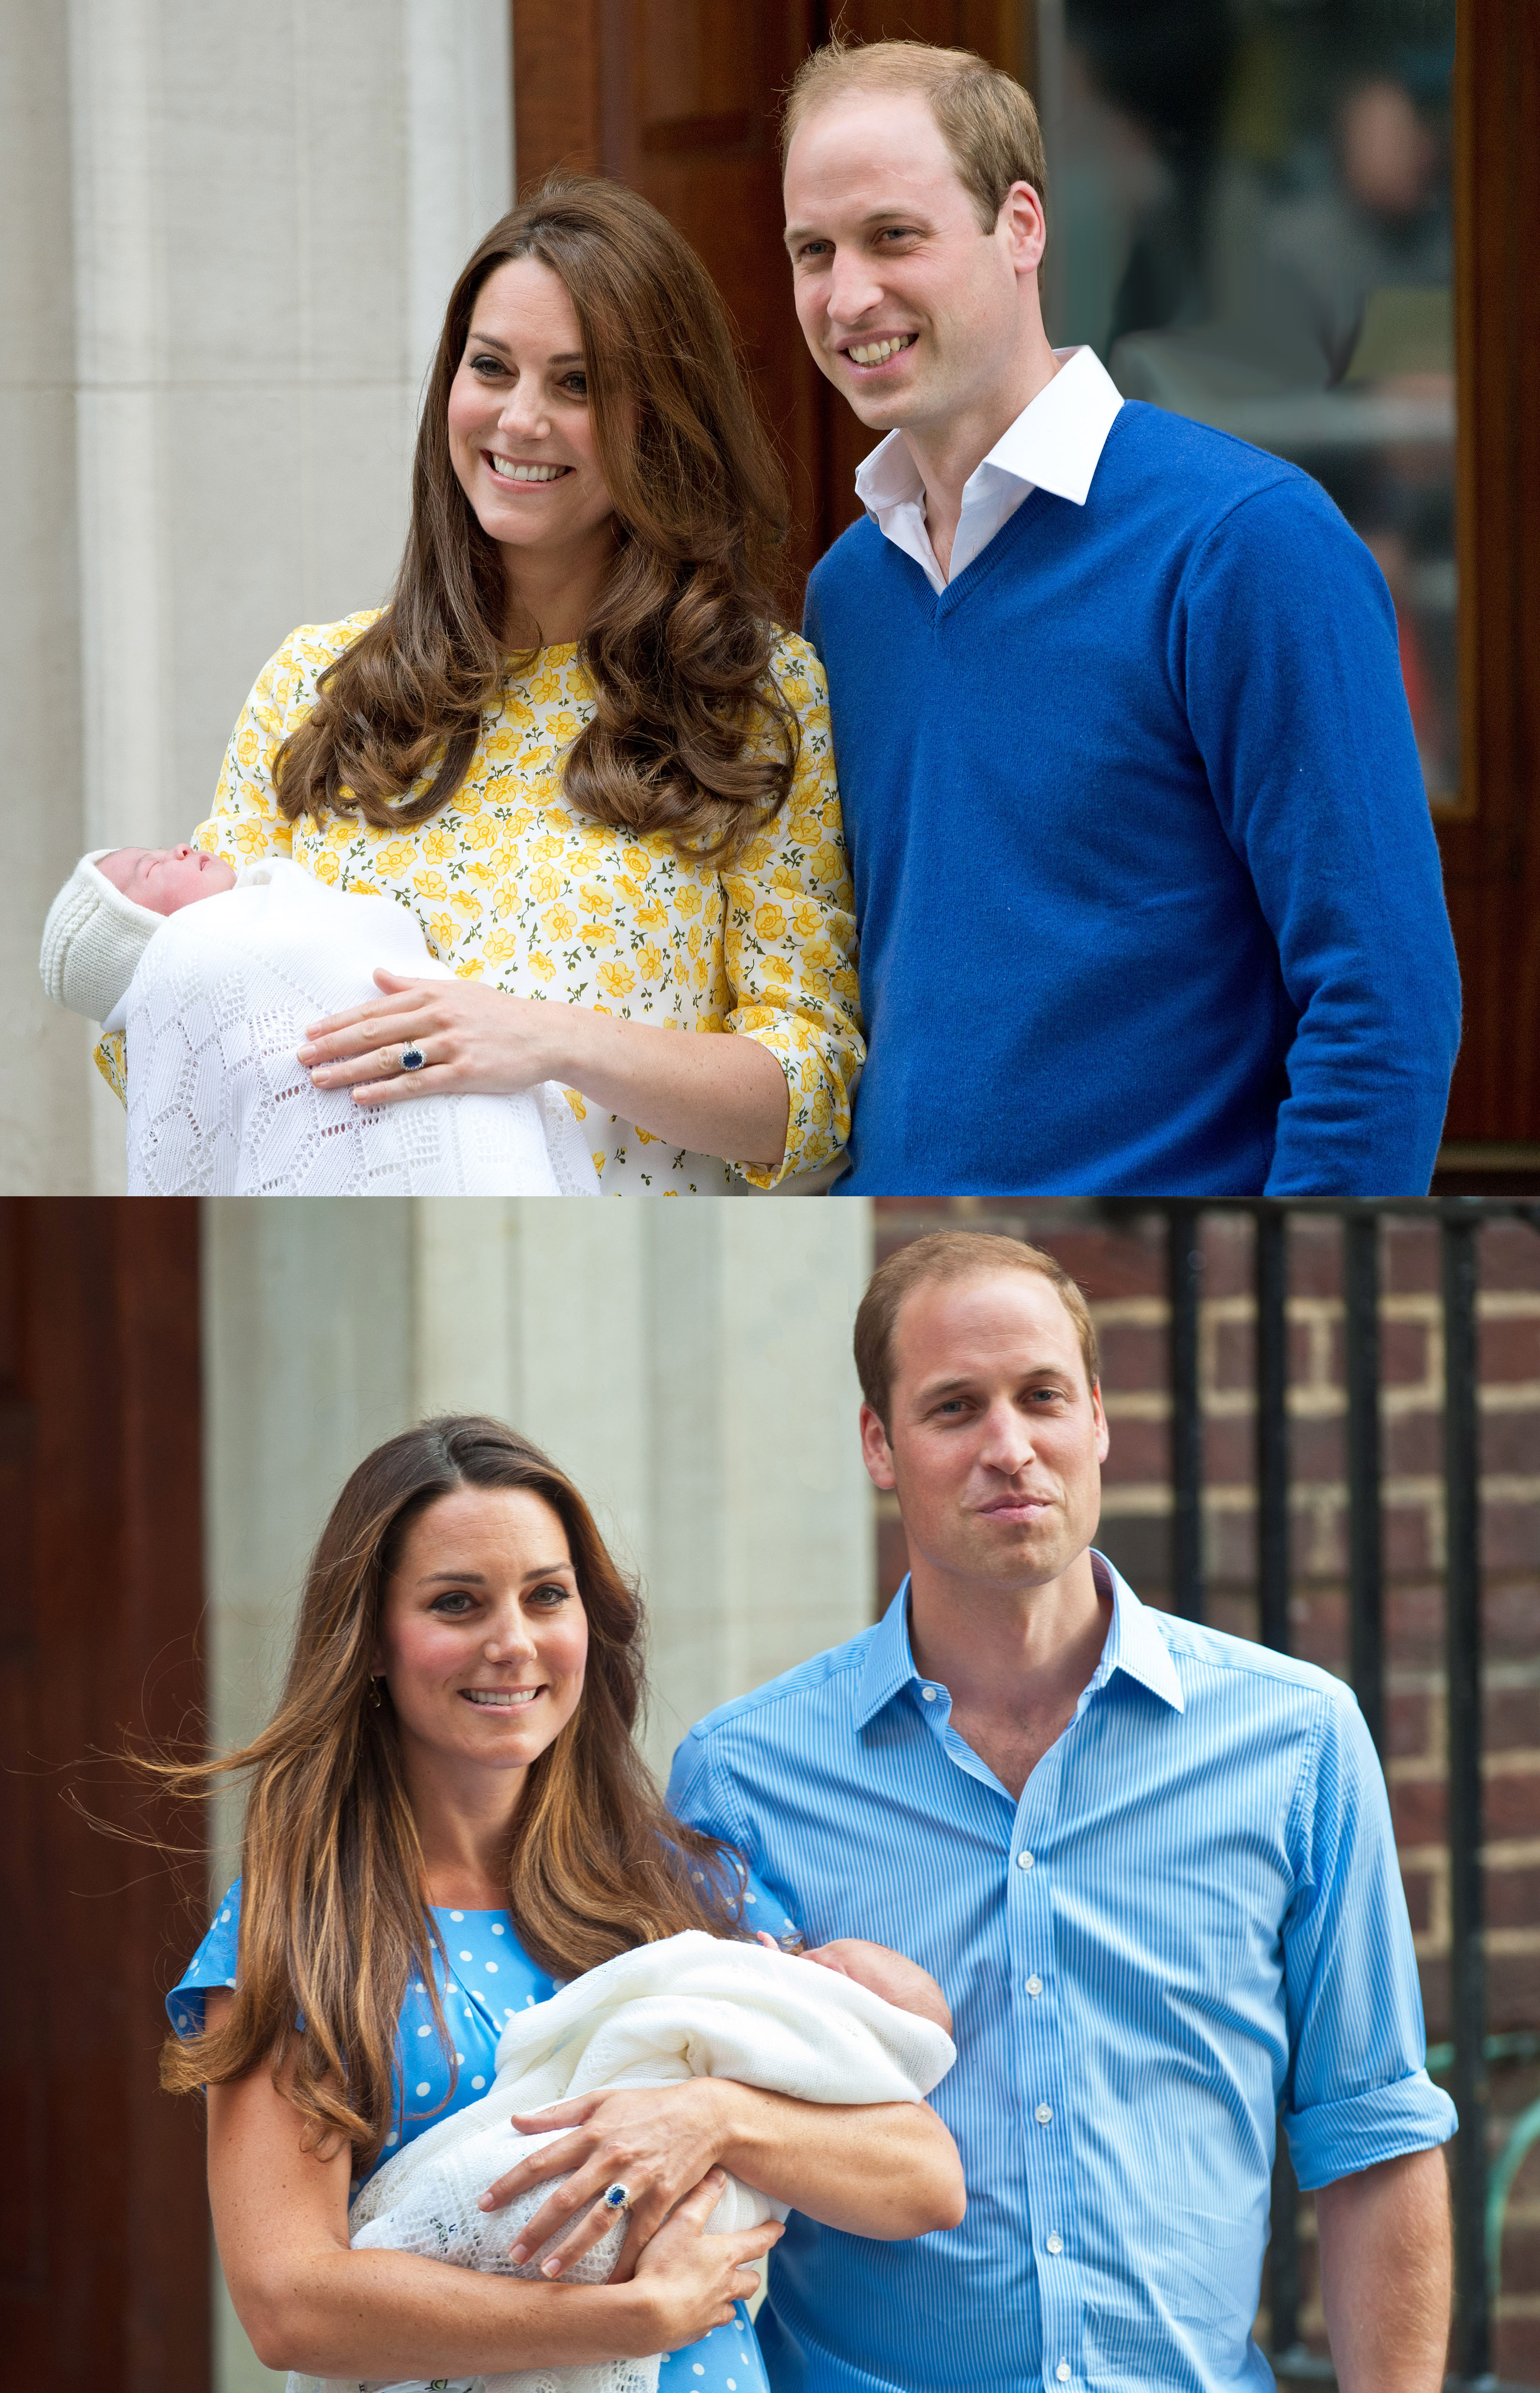 The Birth of The New Royal Baby in London